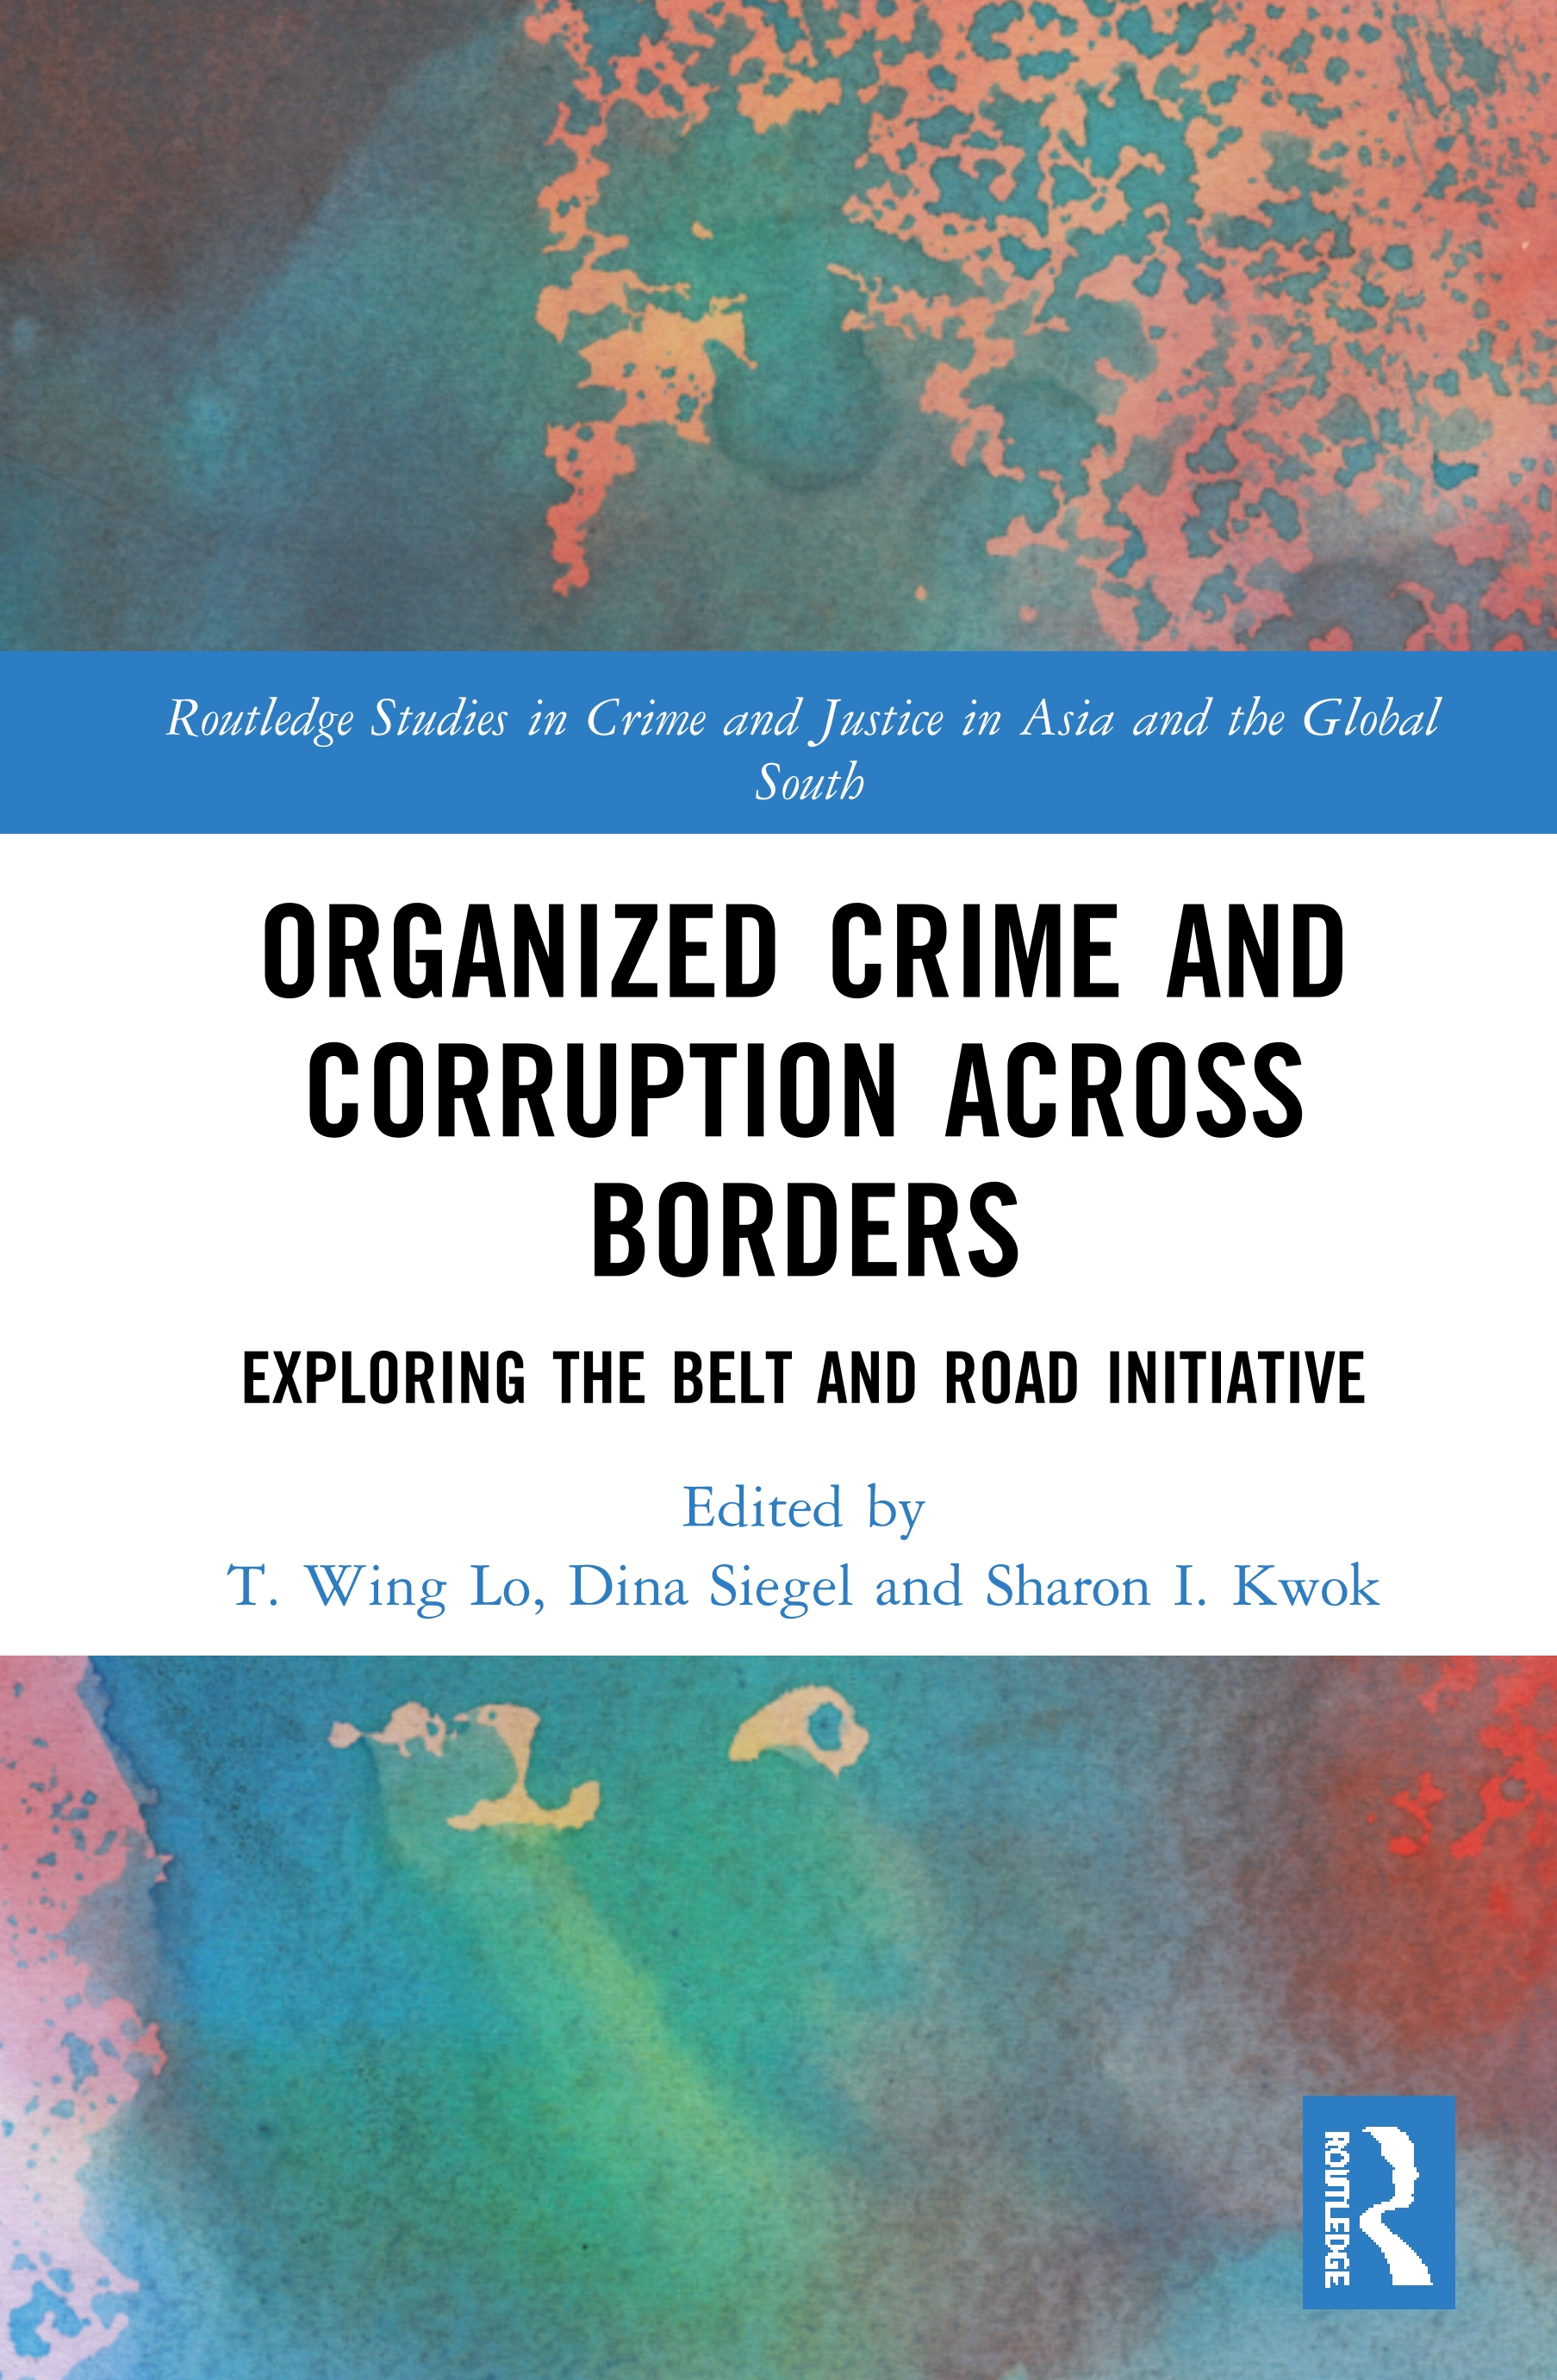 Organized Crime and Corruption Across Borders: Exploring the Belt and Road Initiative book cover